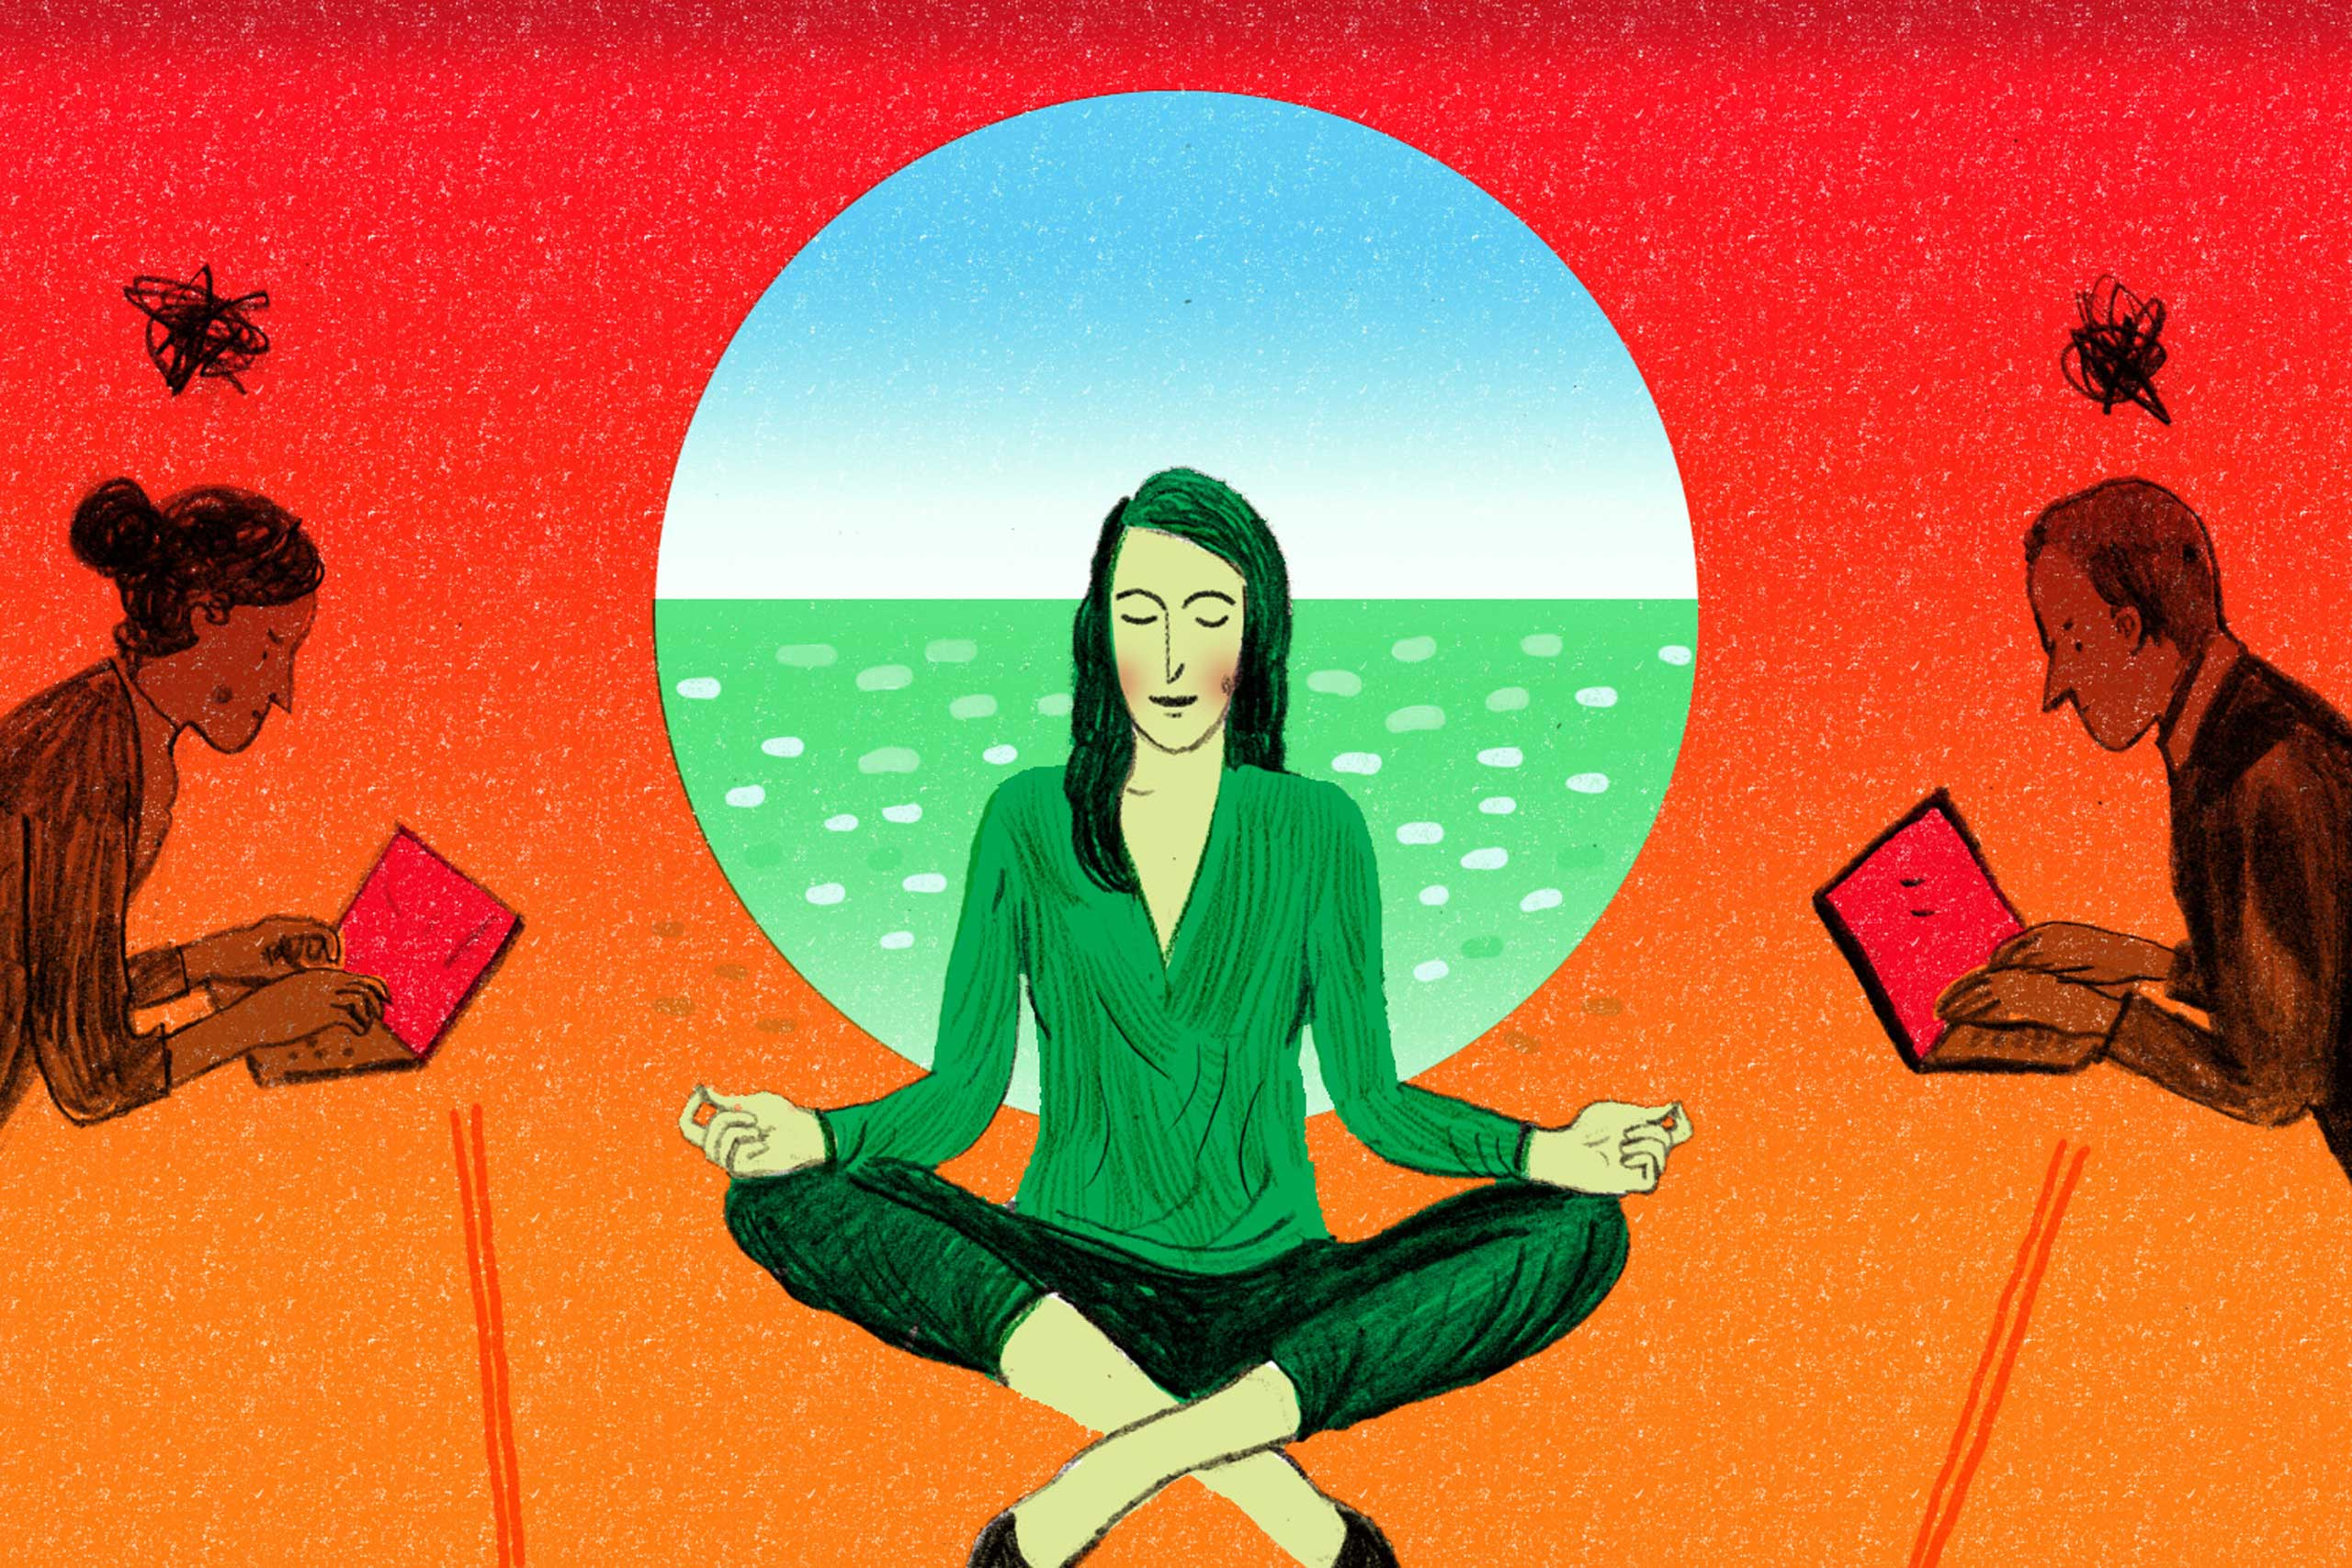 "<strong><a href=""http://time.com/3479384/meditation-benefits/"" target=""_blank"">You Asked: Is Meditation Really Worth It?</a></strong>                                   From easing stress to lowering heart disease risk, focusing your mind can do some amazing things for your body."